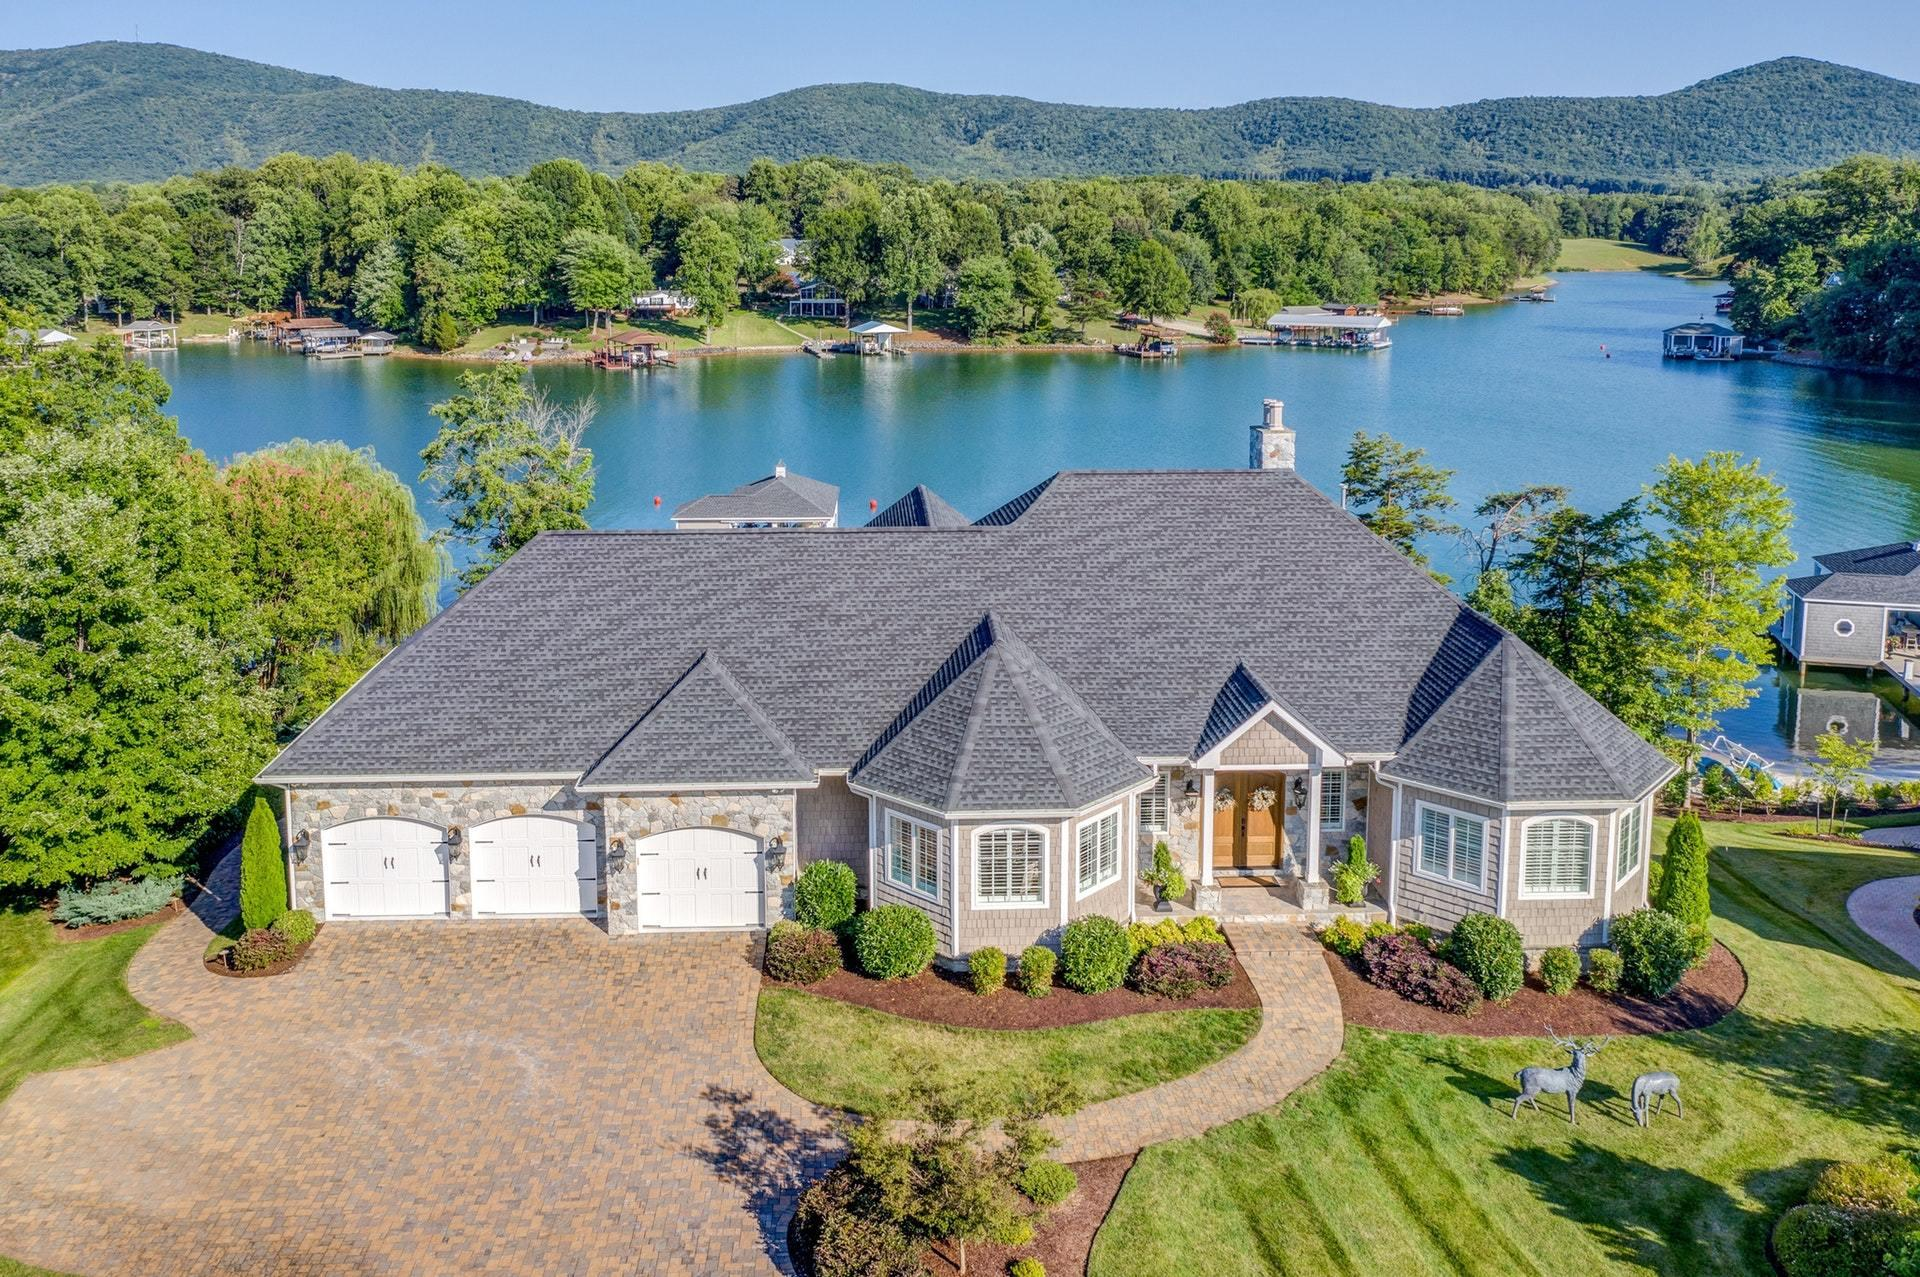 Lake Front Homes 600 000 And Up Smith Mountain Lake Properties